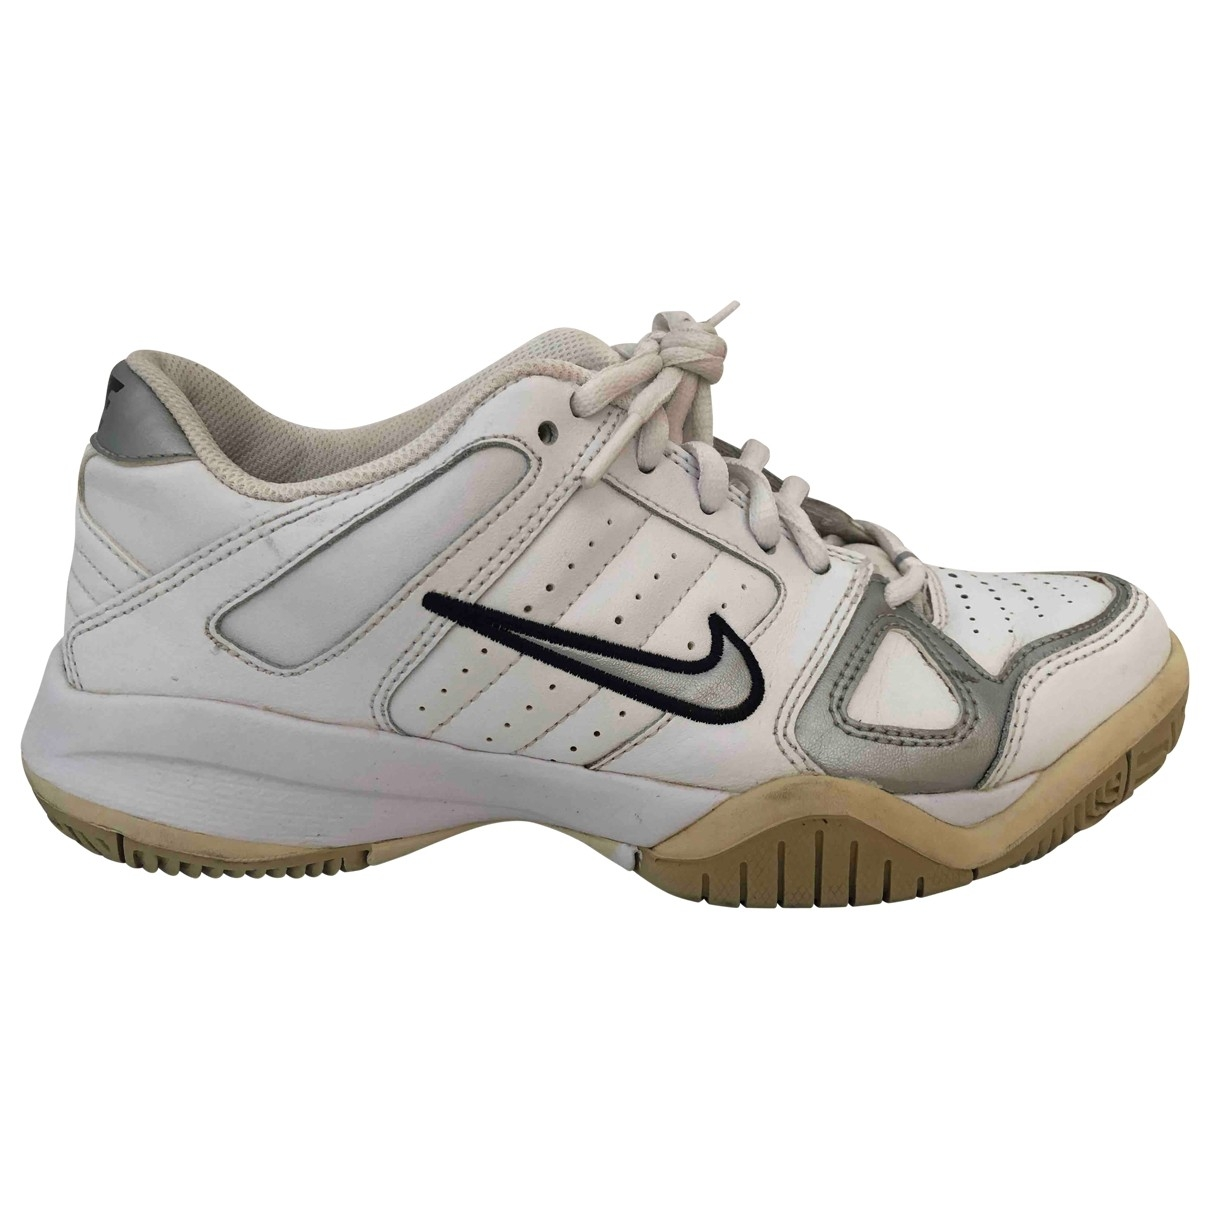 Nike \N White Leather Trainers for Women 38 EU